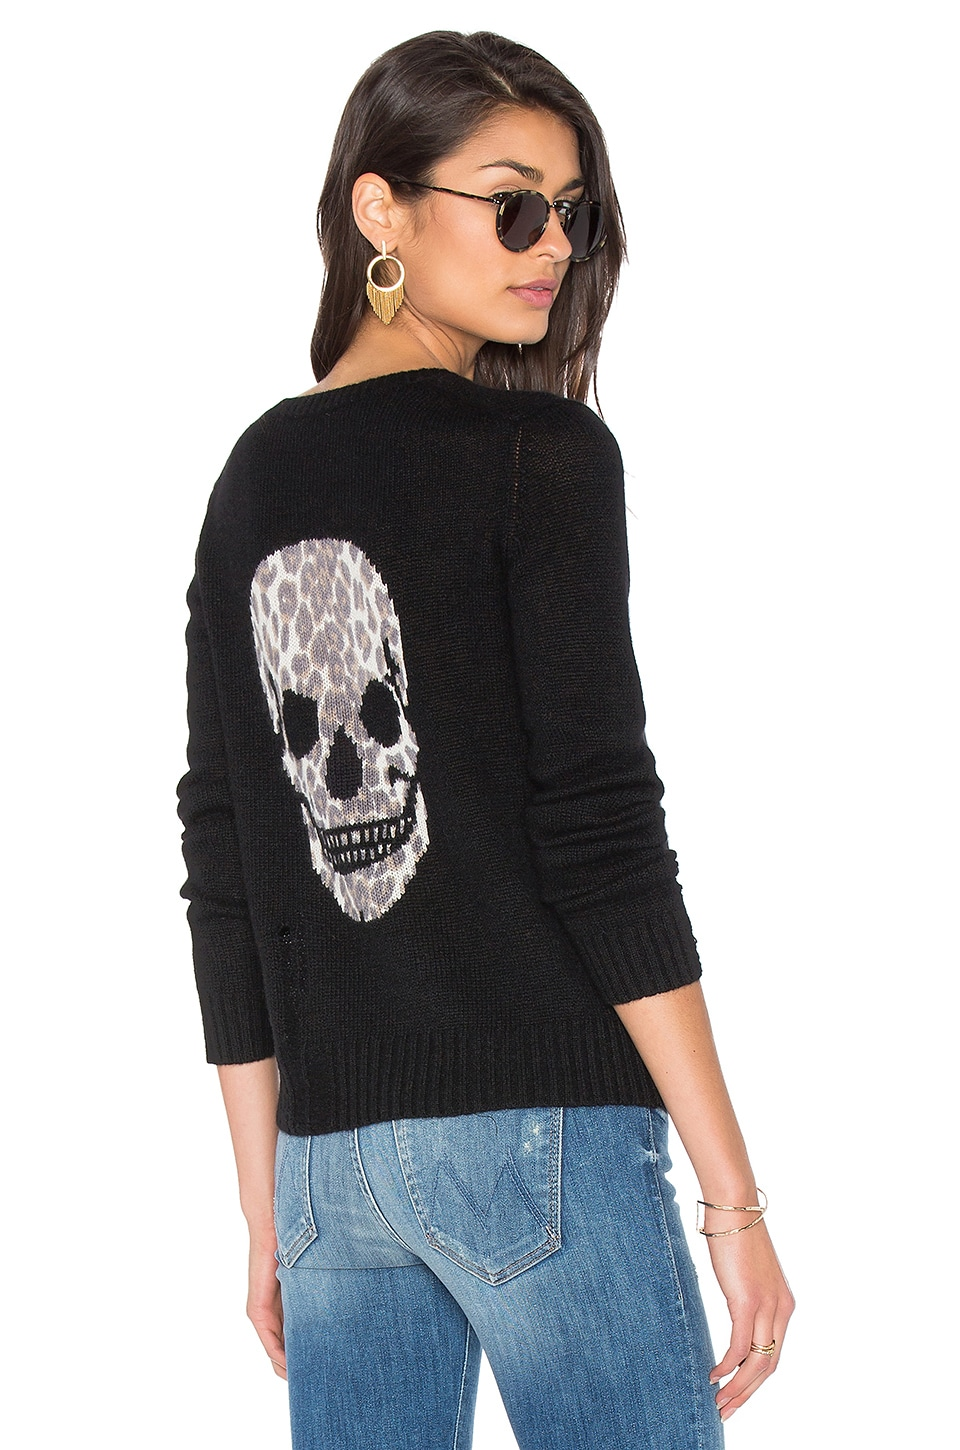 360CASHMERE Raj Cashmere Skull Sweater in Black